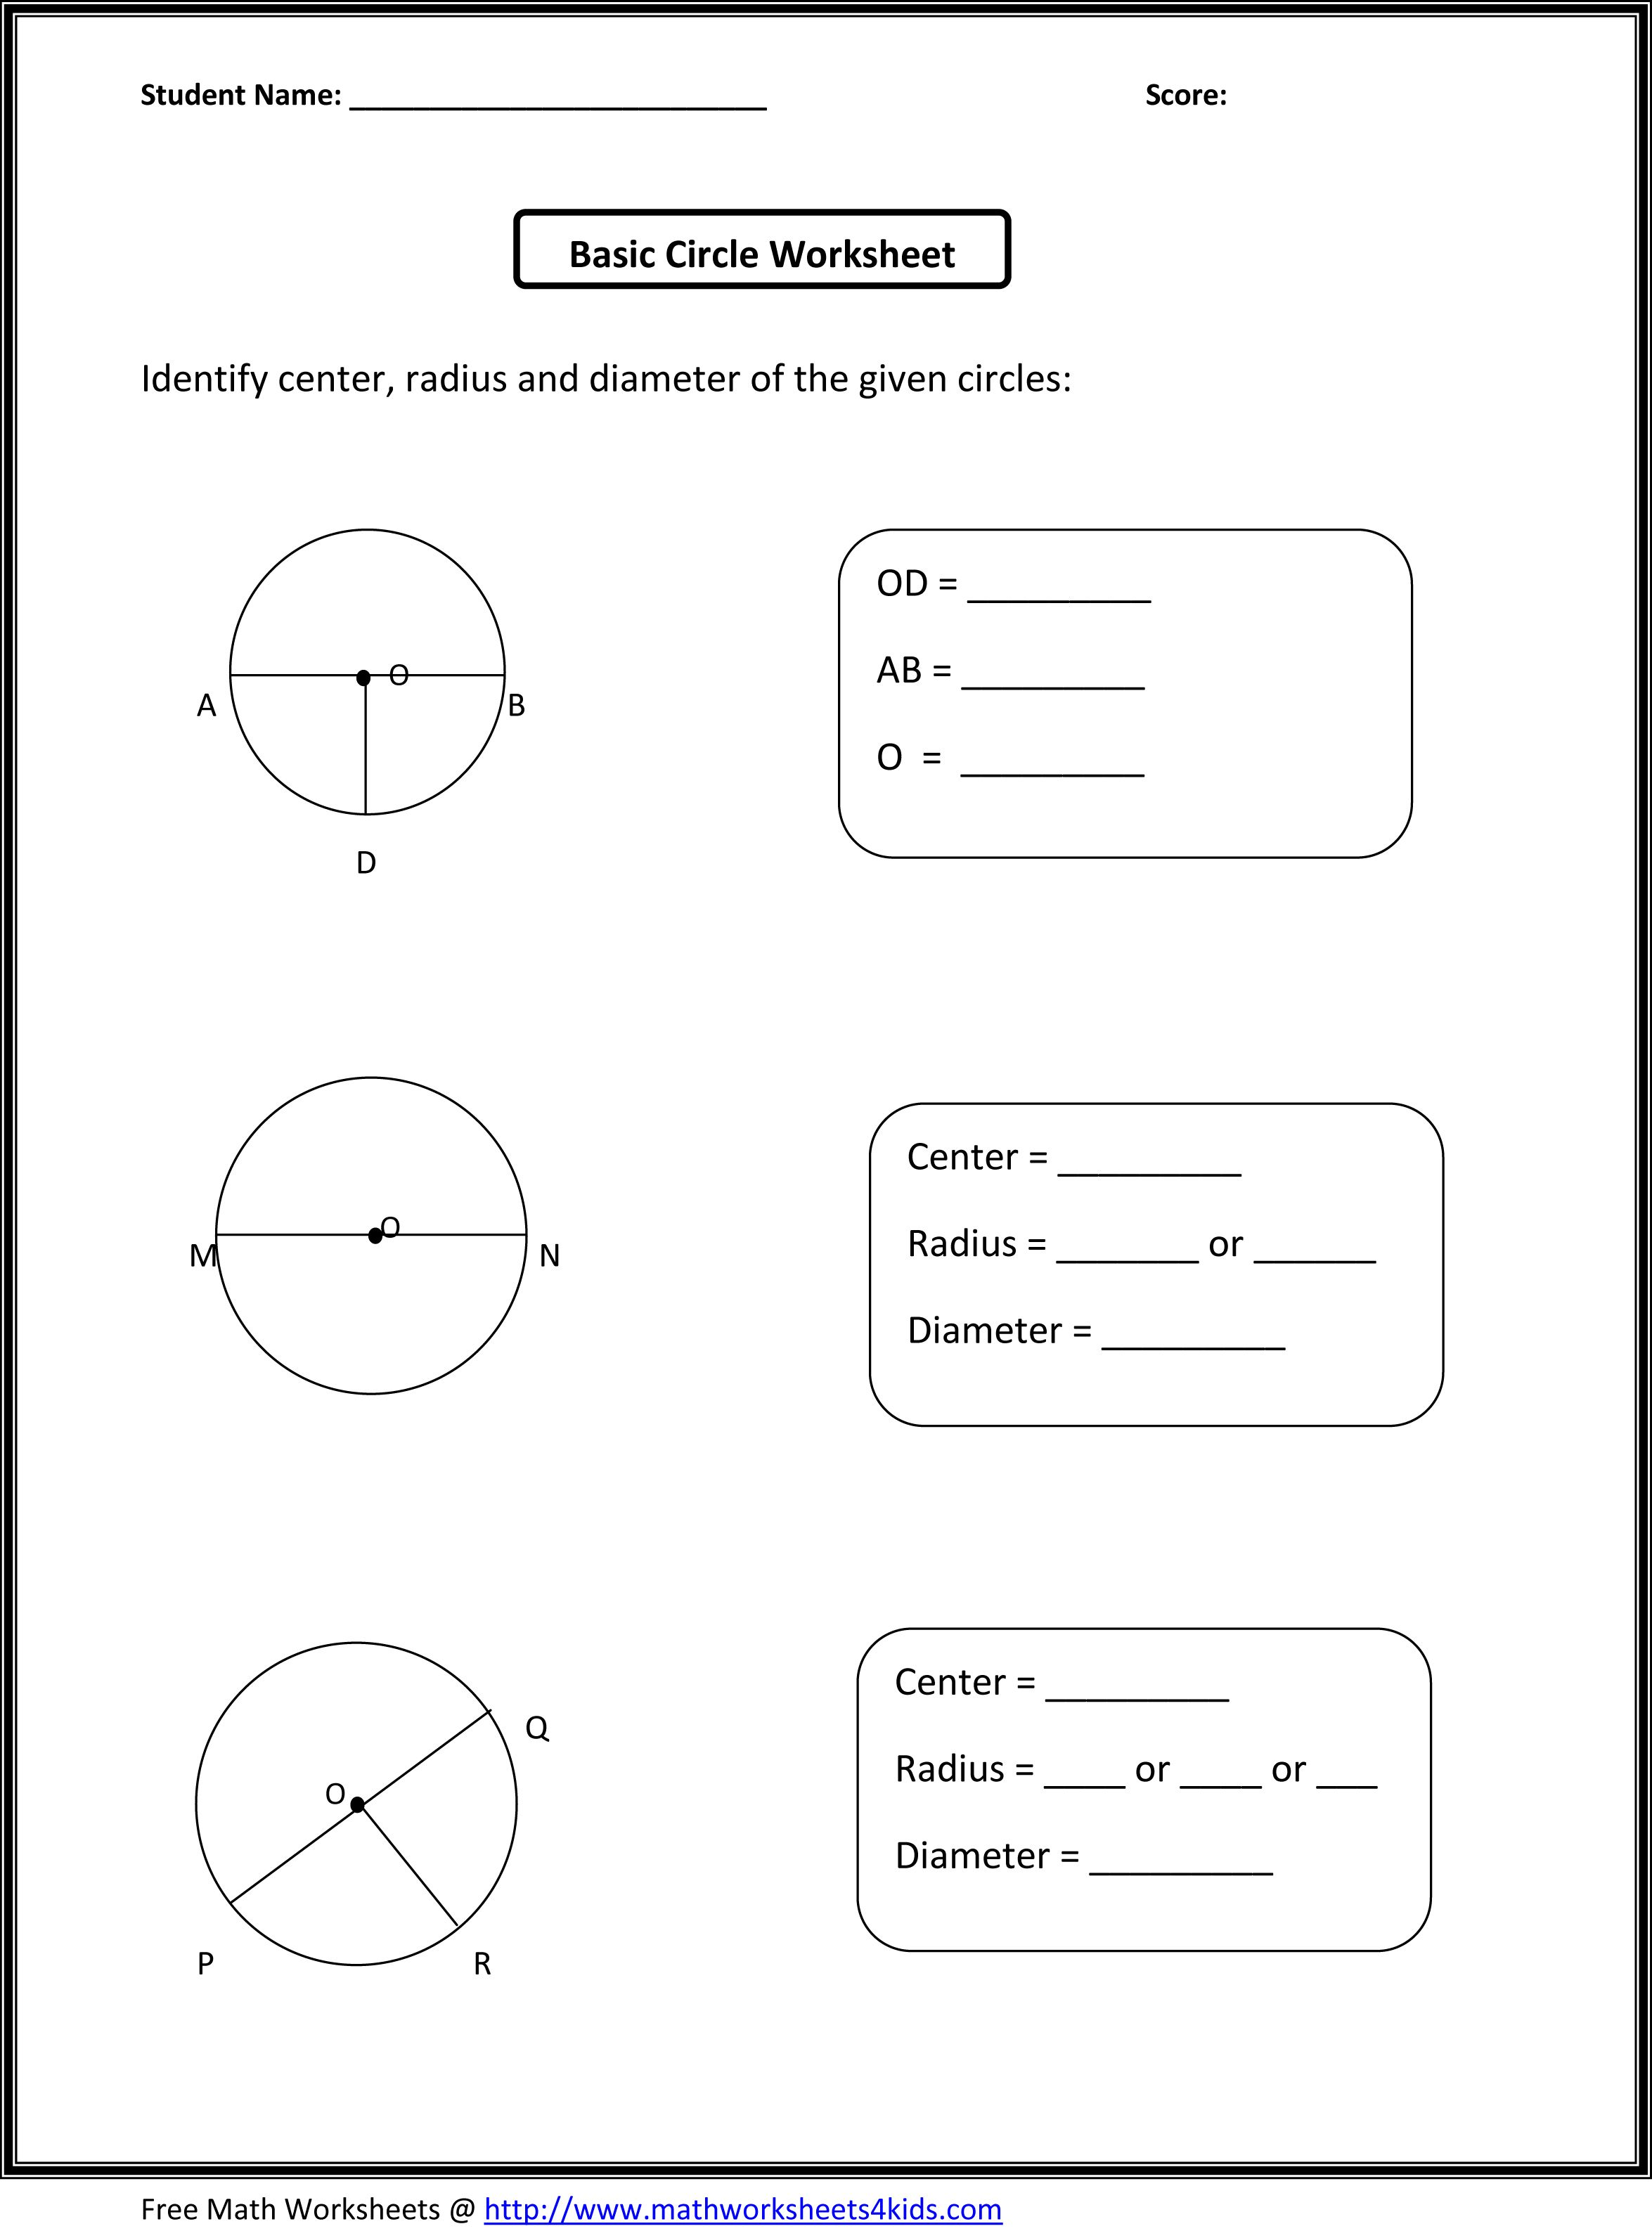 Basic circle worksheets | Math charts | Pinterest